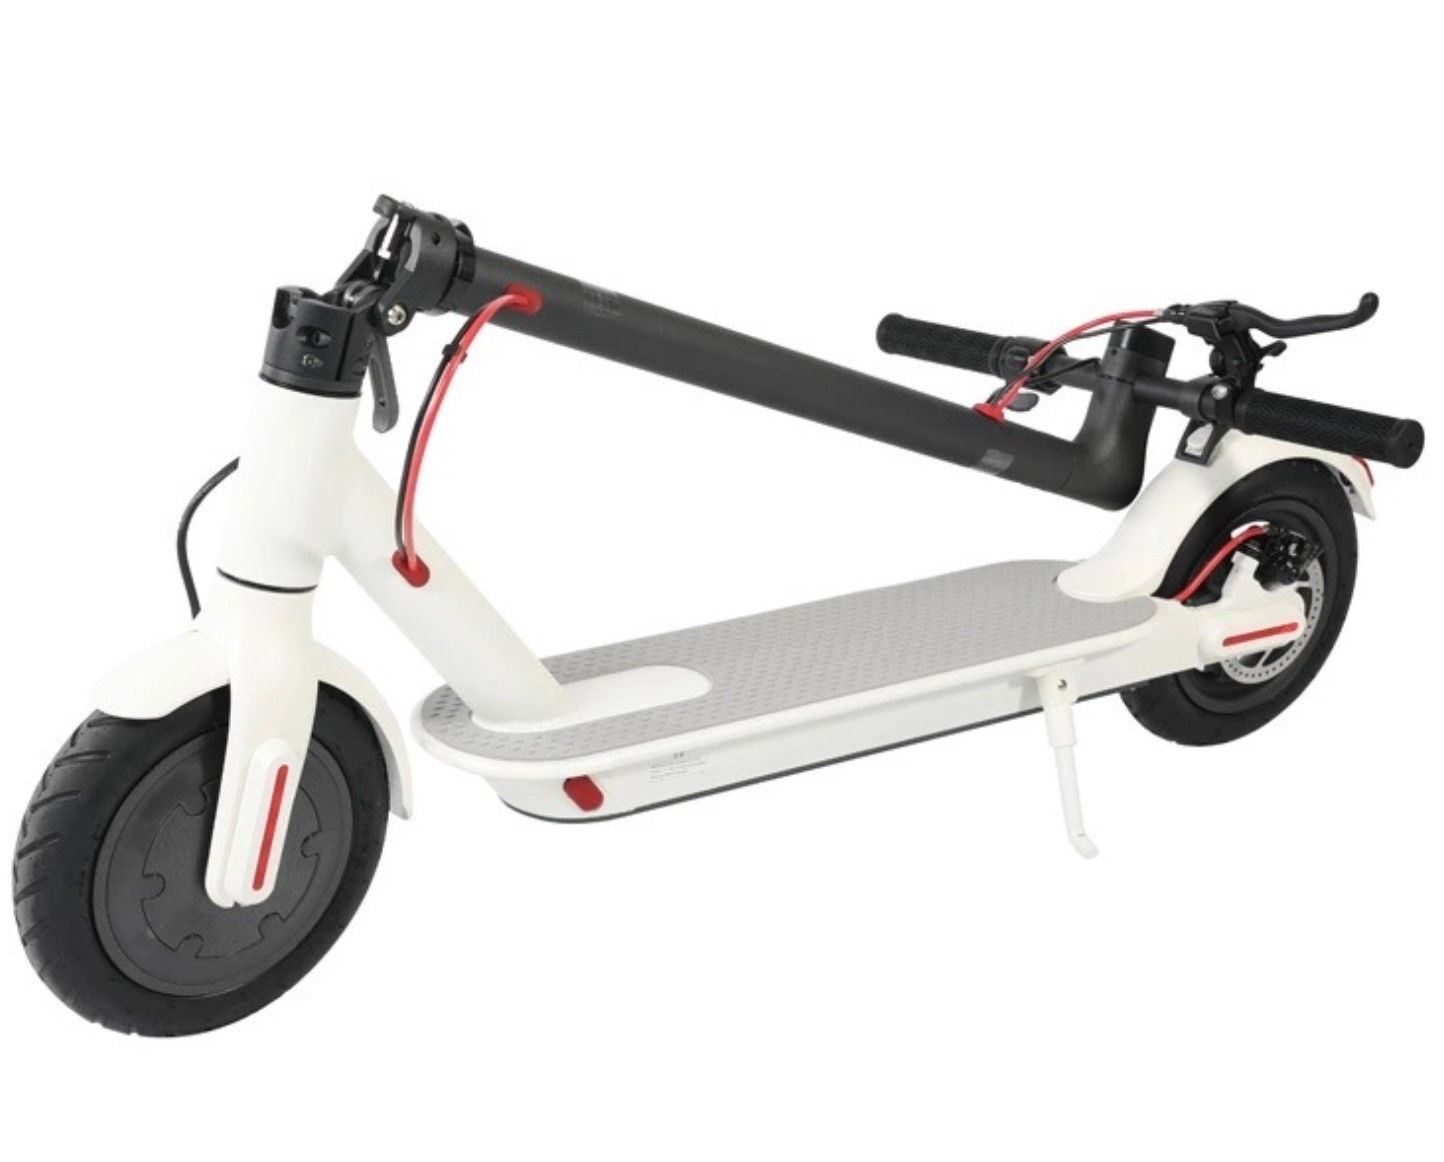 Generic Xiaomi M365 Electric Scooter